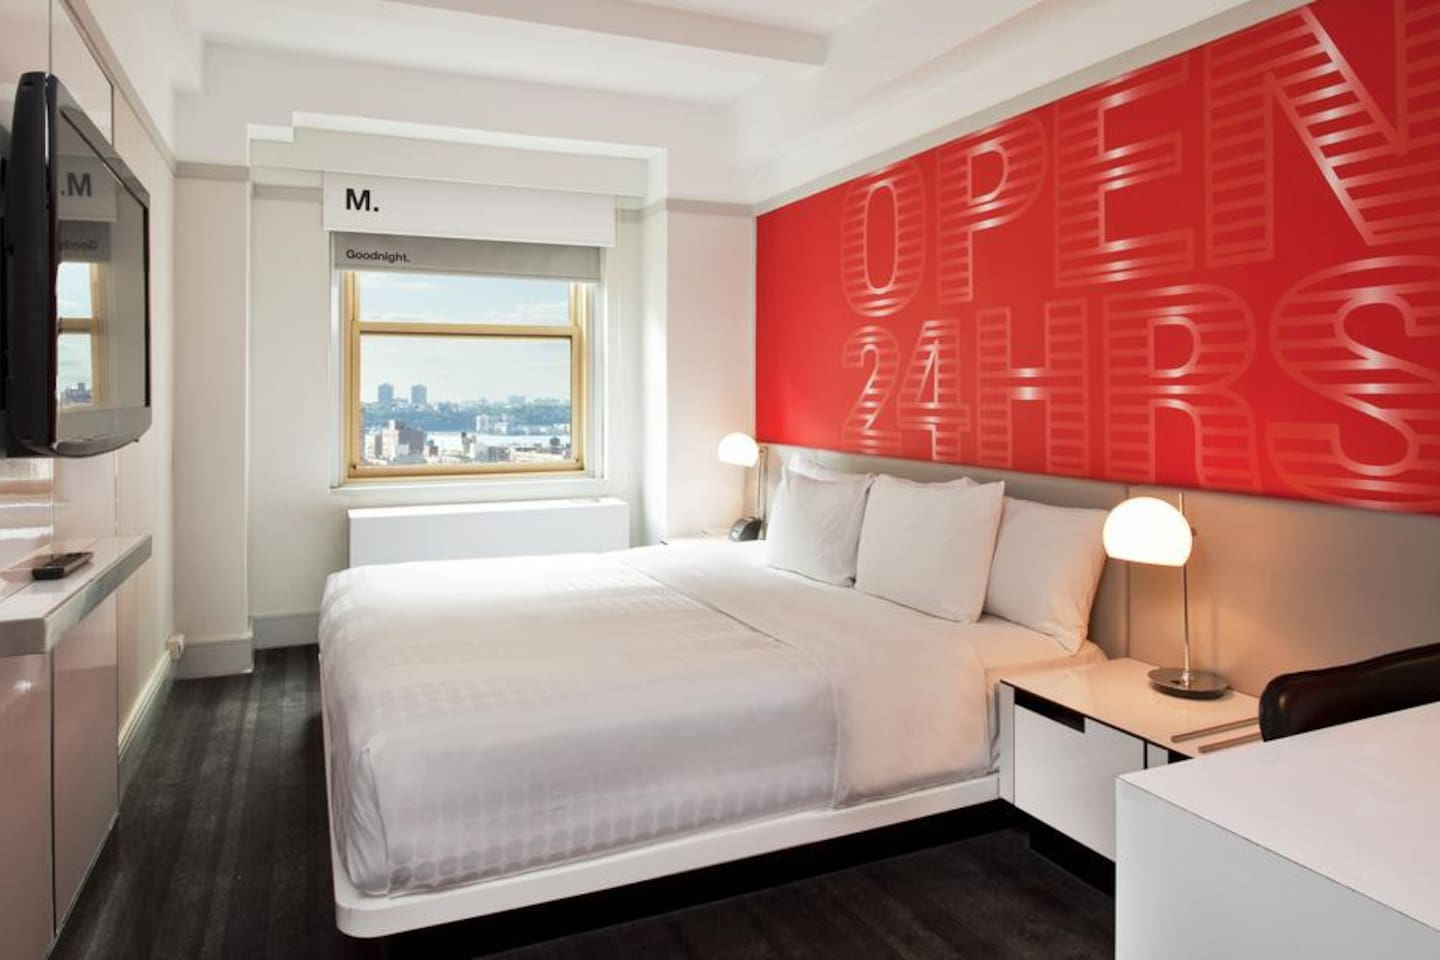 Downtown cool – yet sophisticated hotel rooms in Times Square New York.